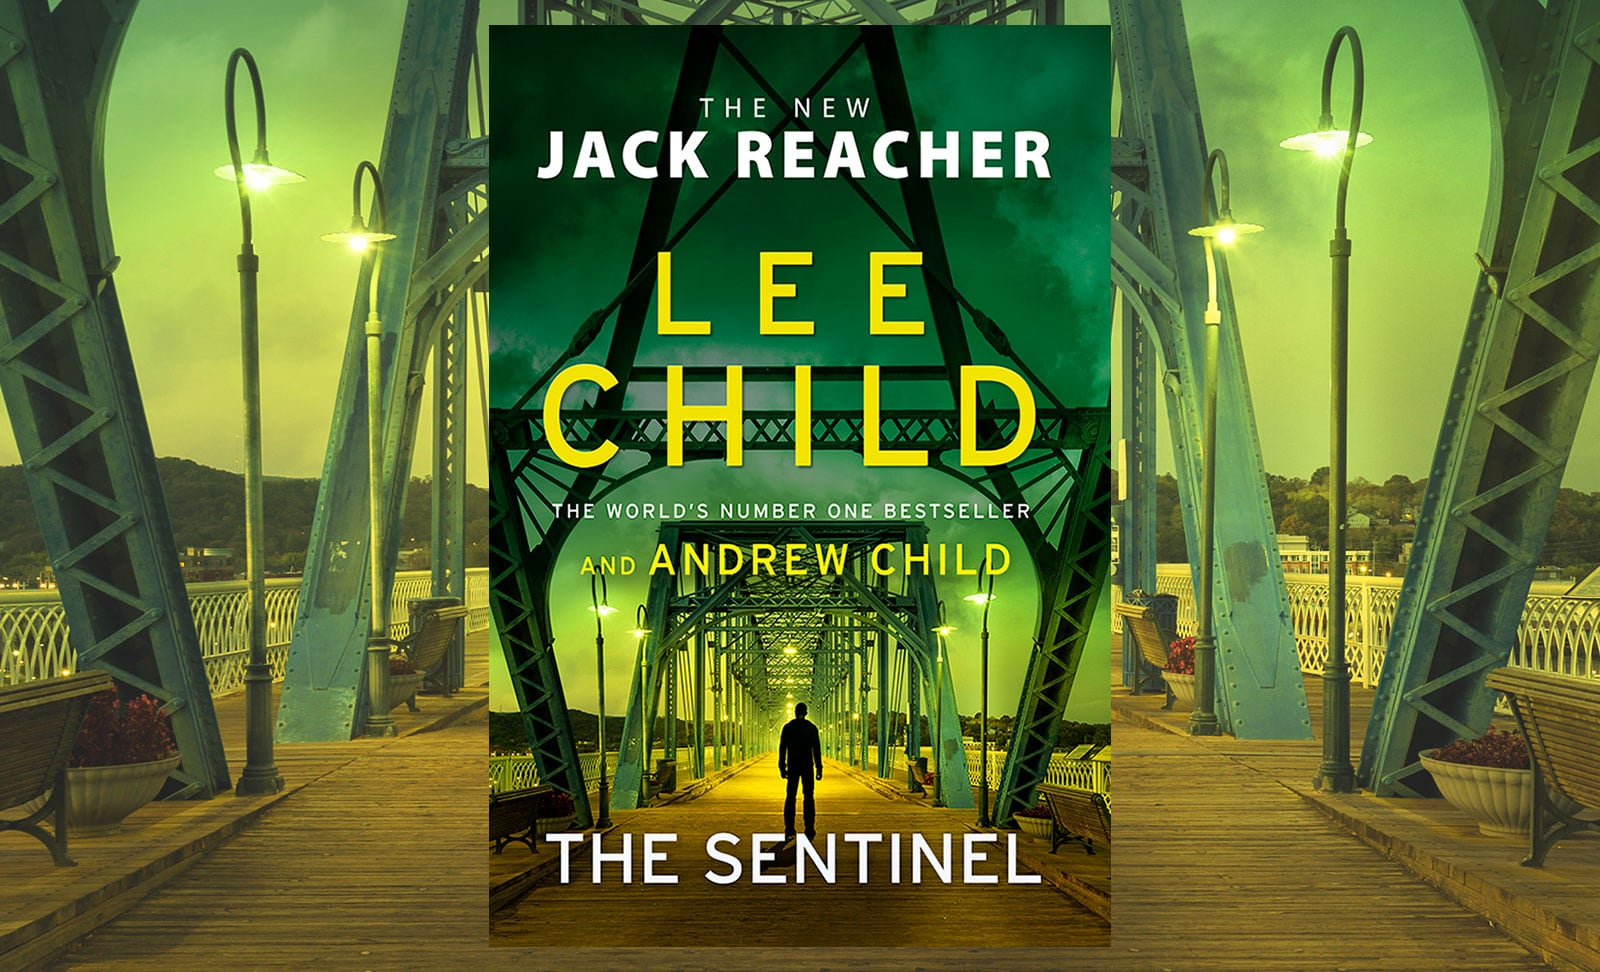 Extract-The-Sentinel-by-Lee-Child